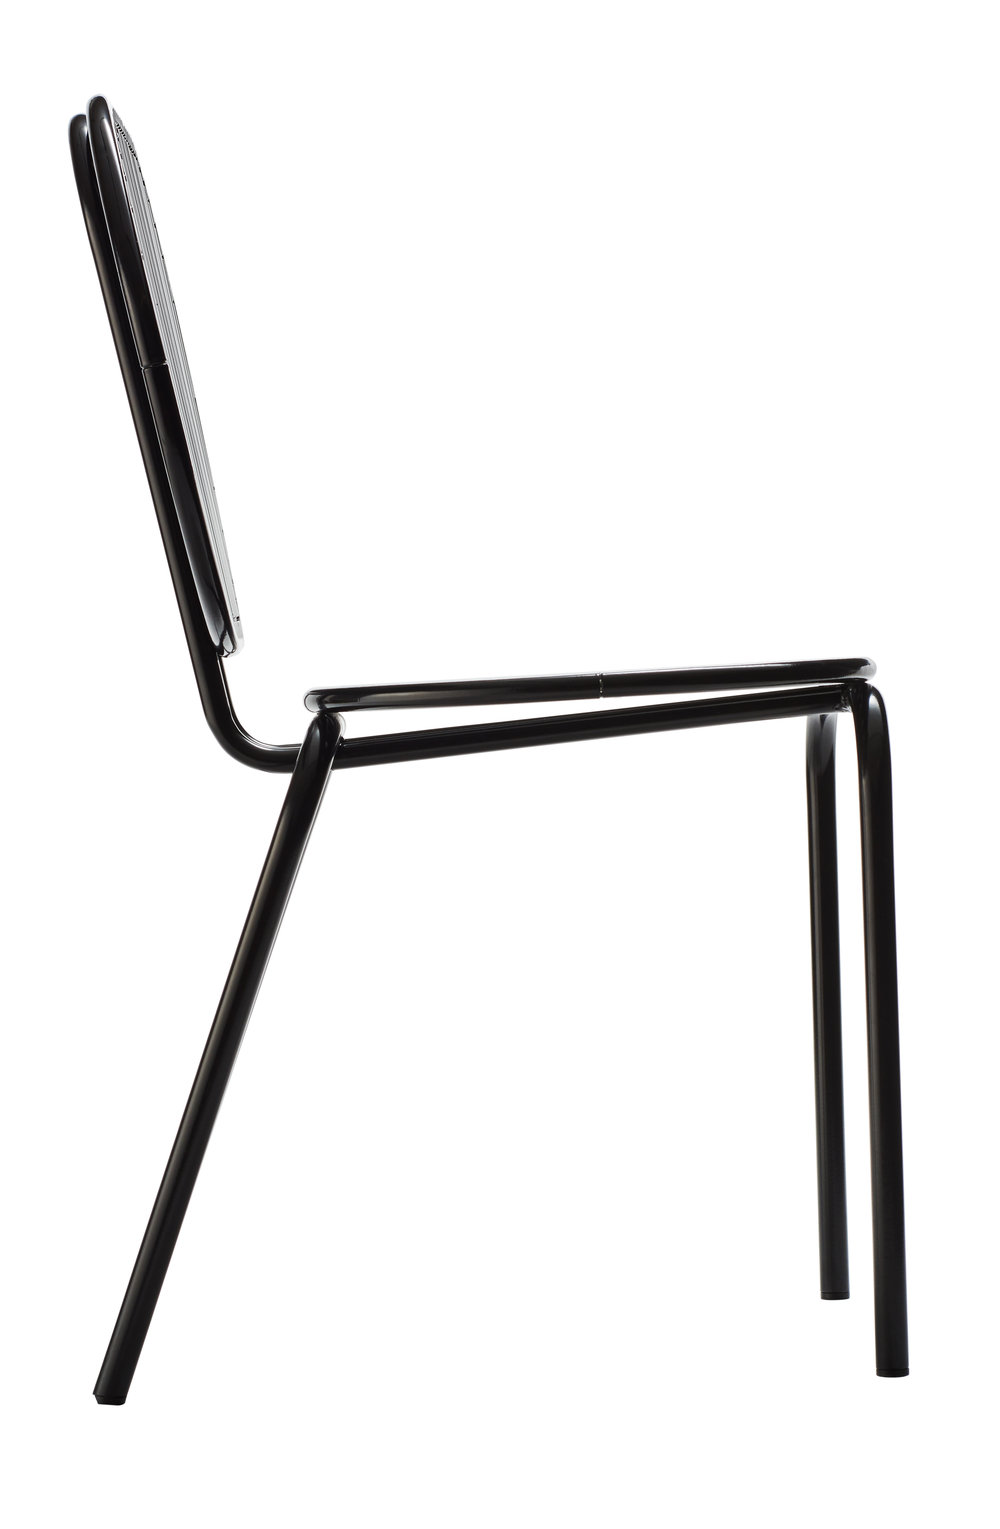 Verena-Hennig-Roll-Collection-Chair